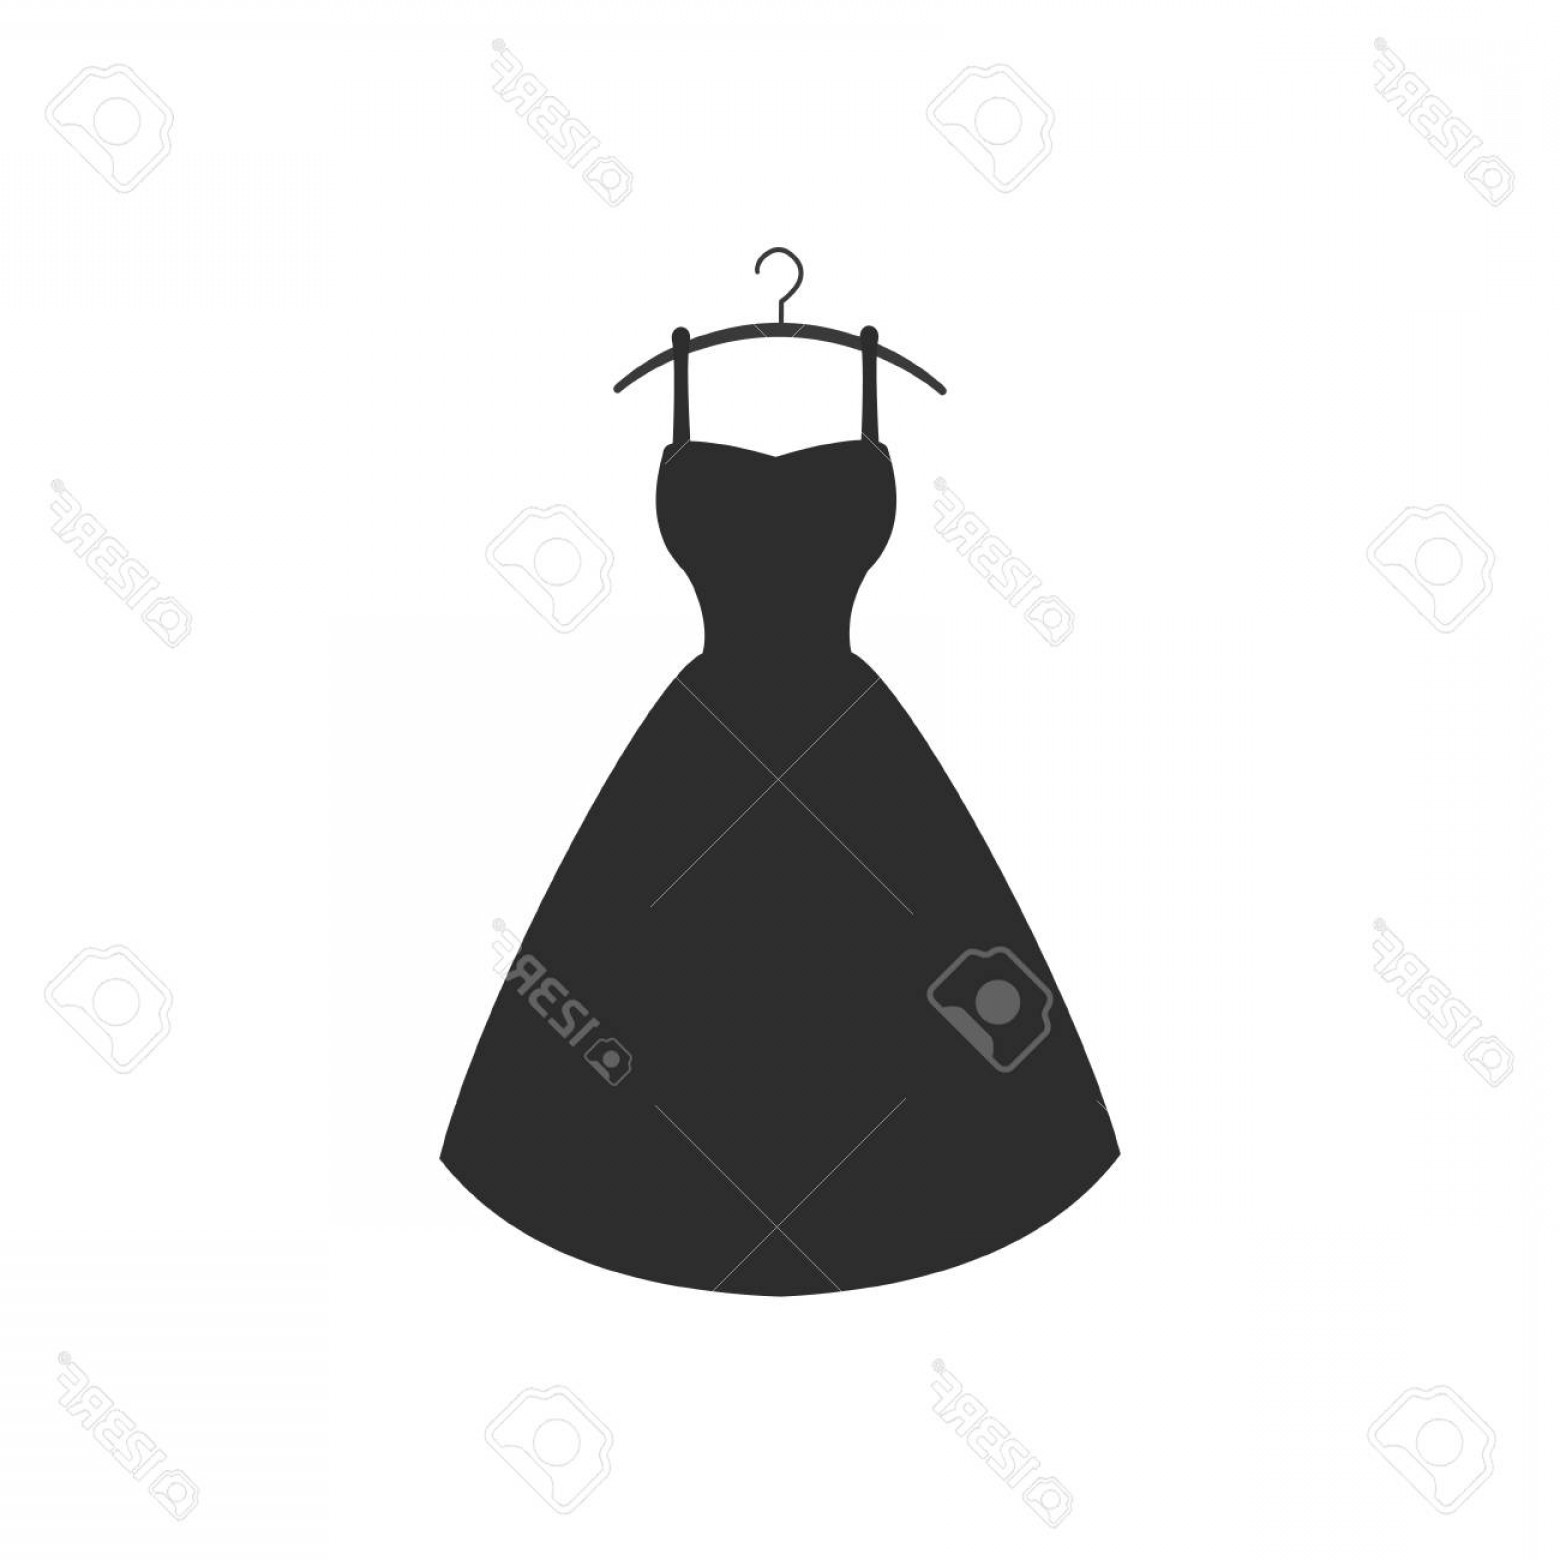 Vector Images Of Black And White Dresses: Photostock Vector Black Cocktail Dress Vector Flat Icon On White Background